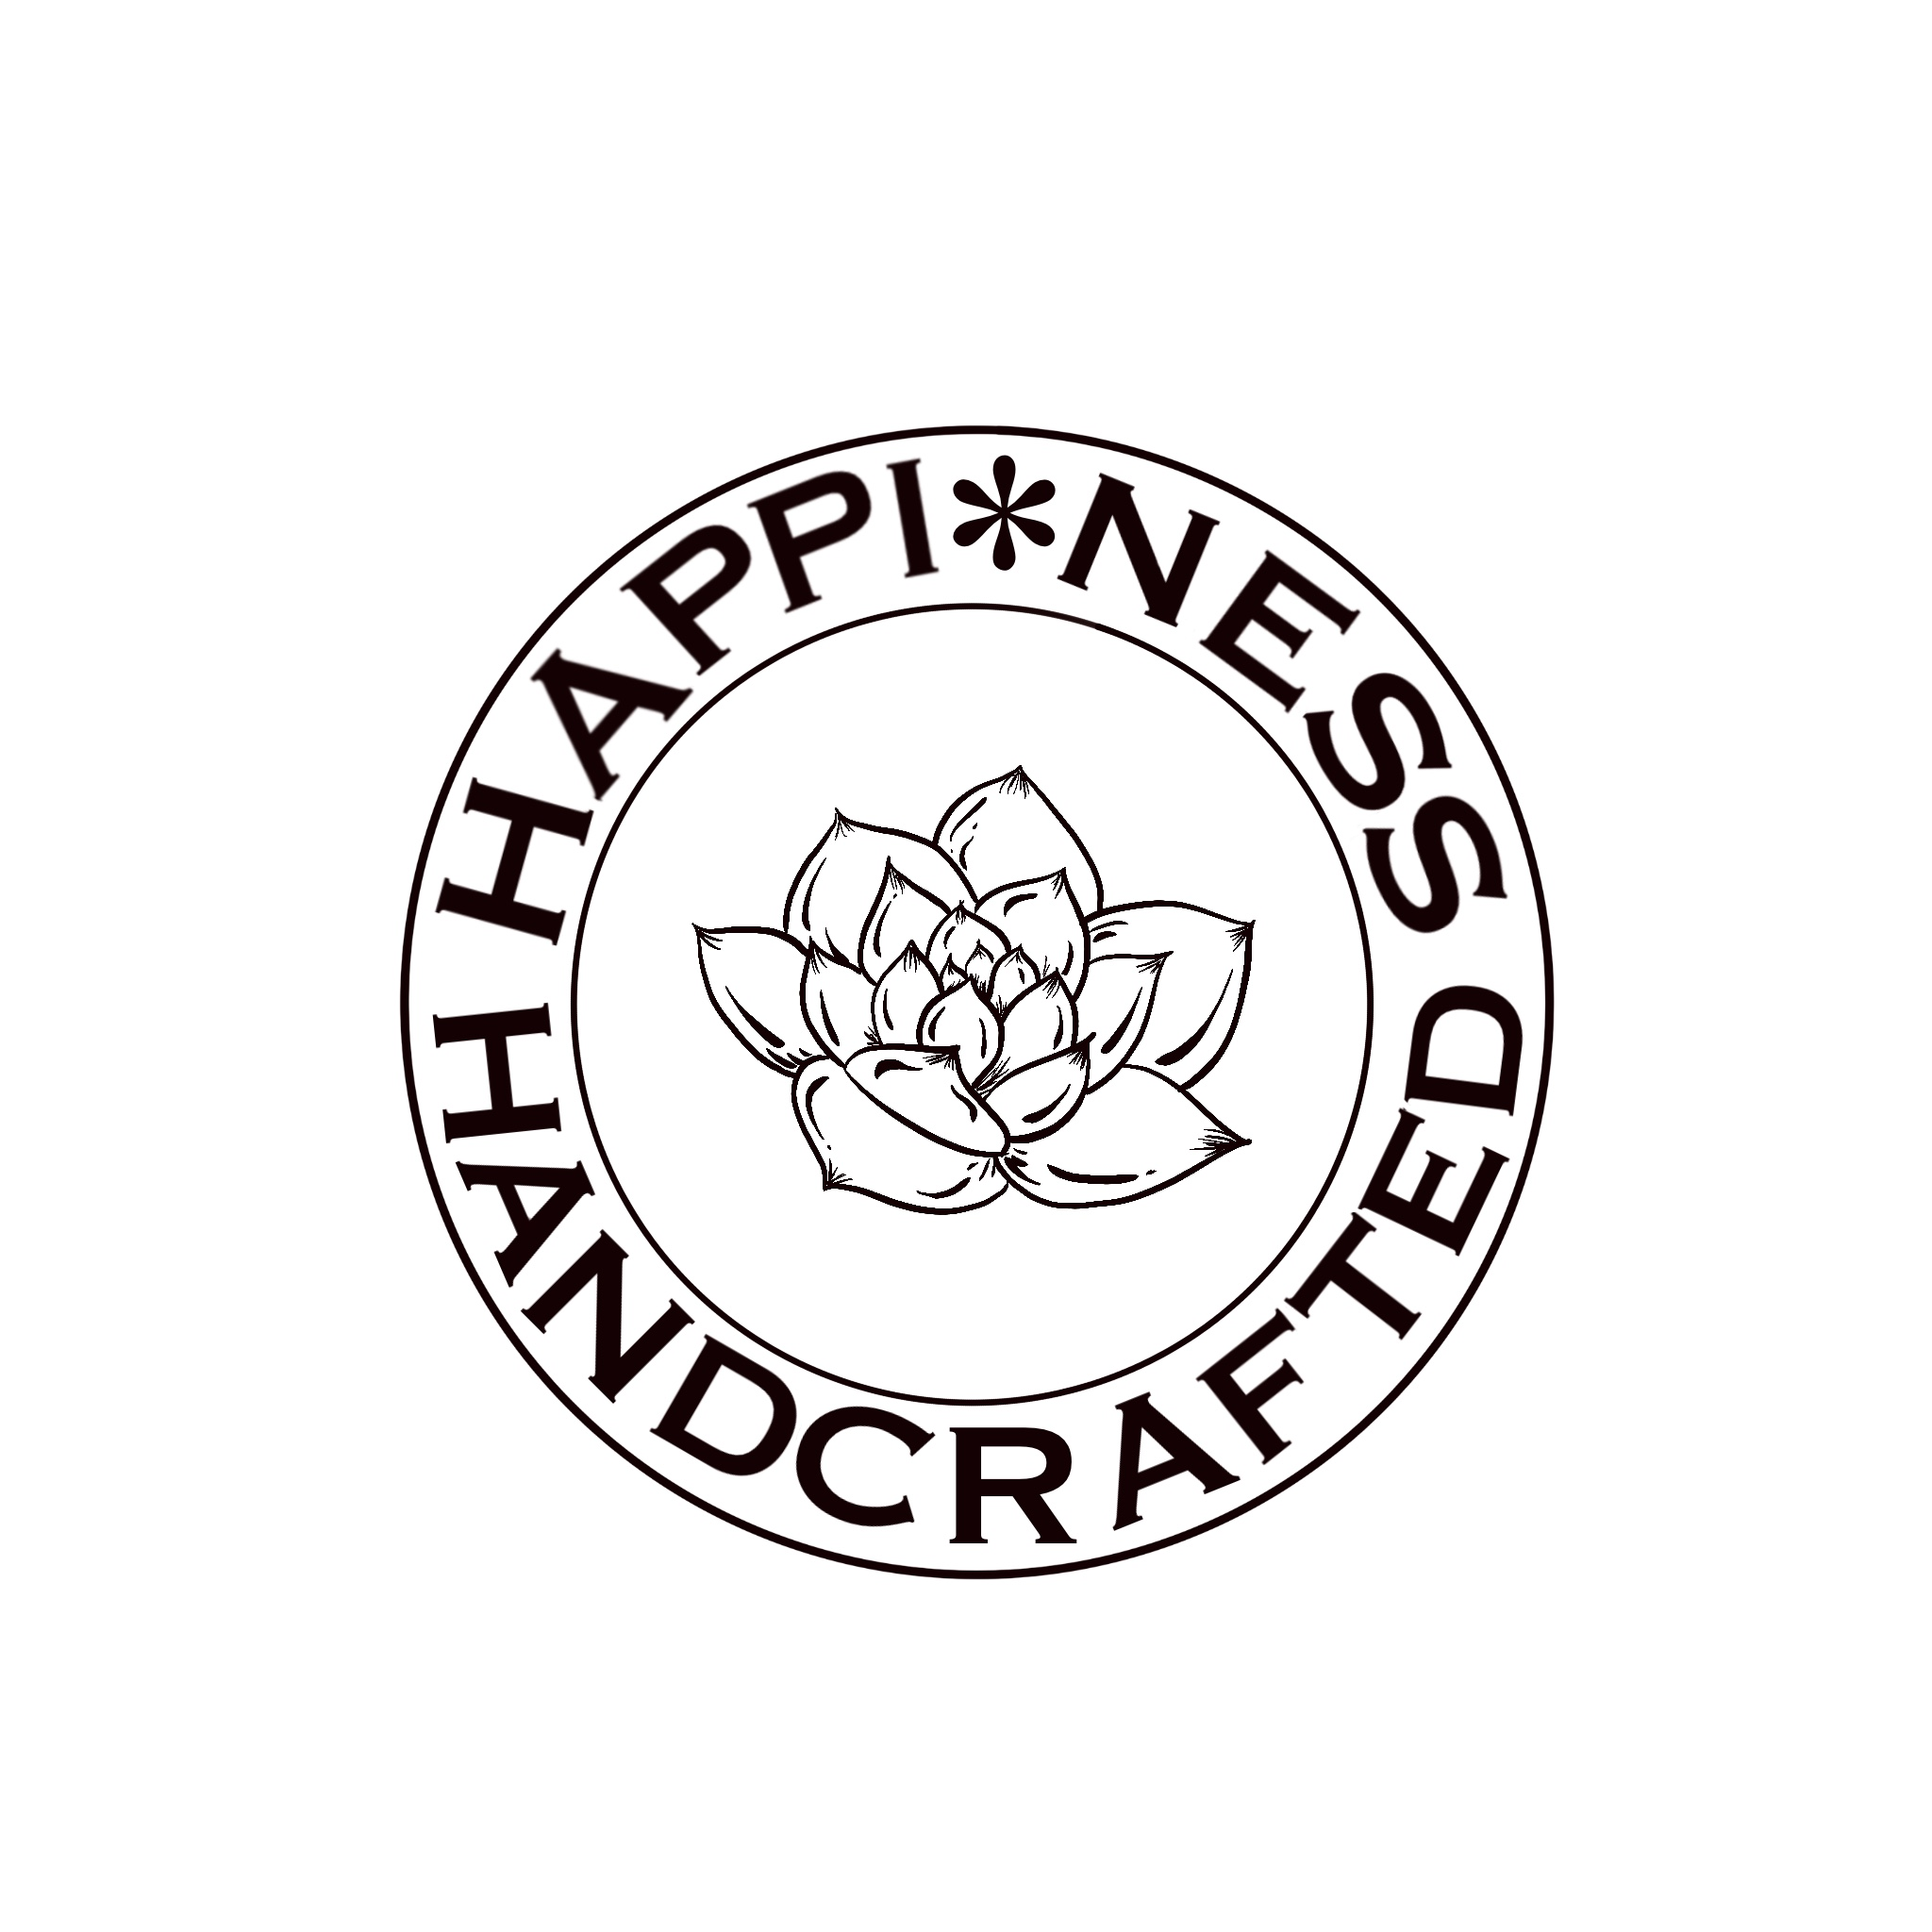 Happi*ness Handcrafted